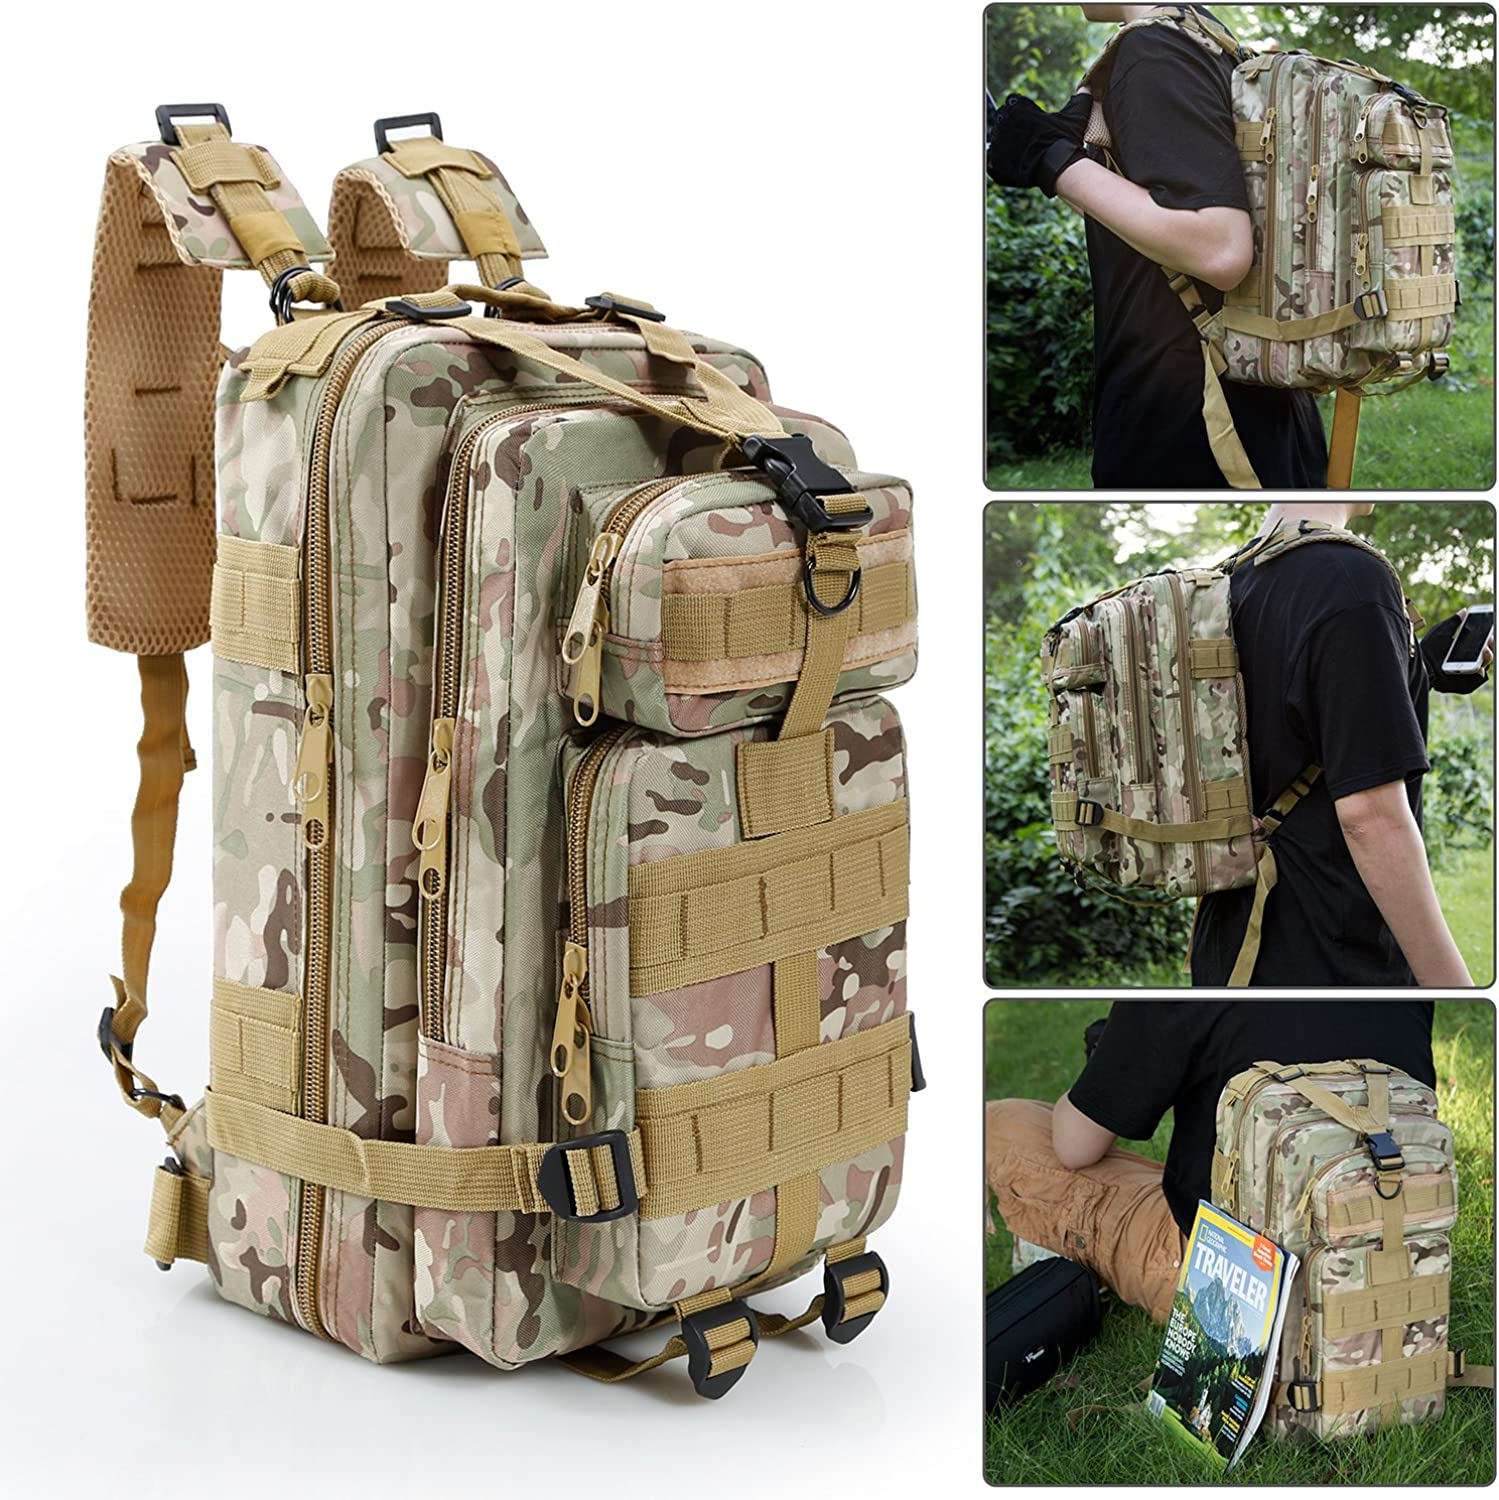 MENS MOLLE MILITARY TACTICAL BACKPACK RUCKSACK HIKING TREKKING OUTDOOR 30L+45L